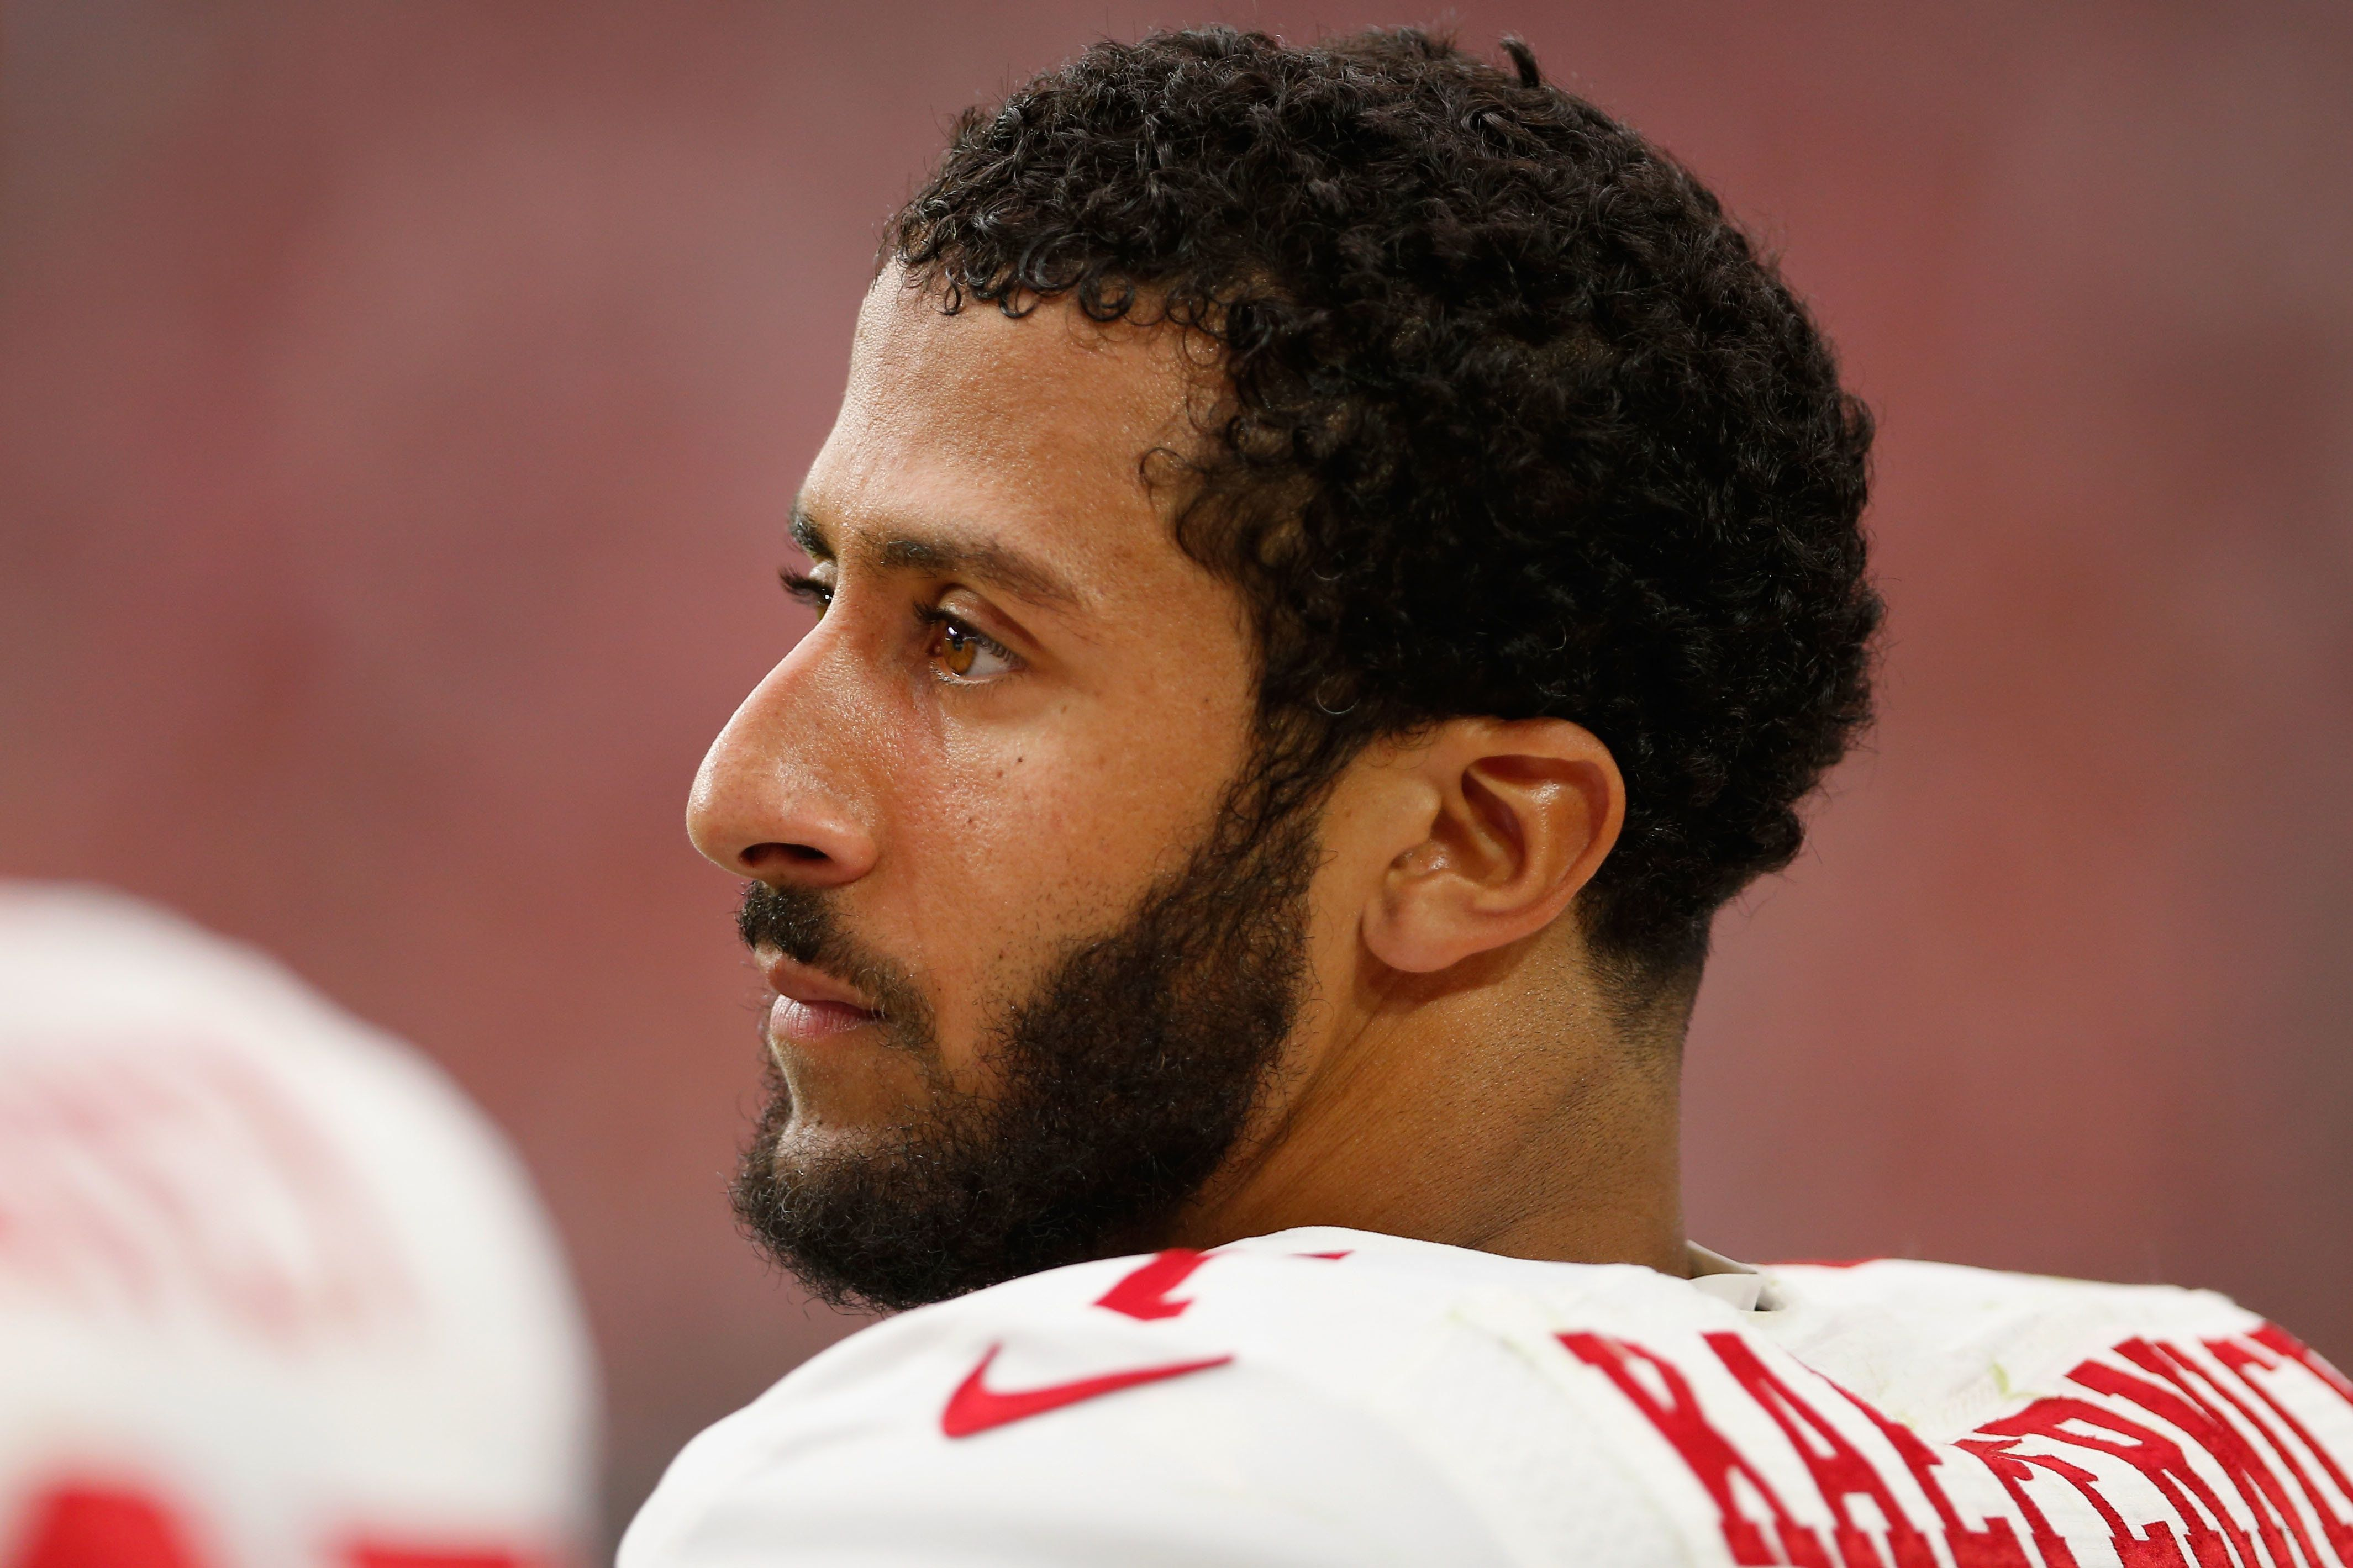 Colin Kaepernick of the San Francisco 49ershas become the most talked-about player in the NFL since his protest last mo